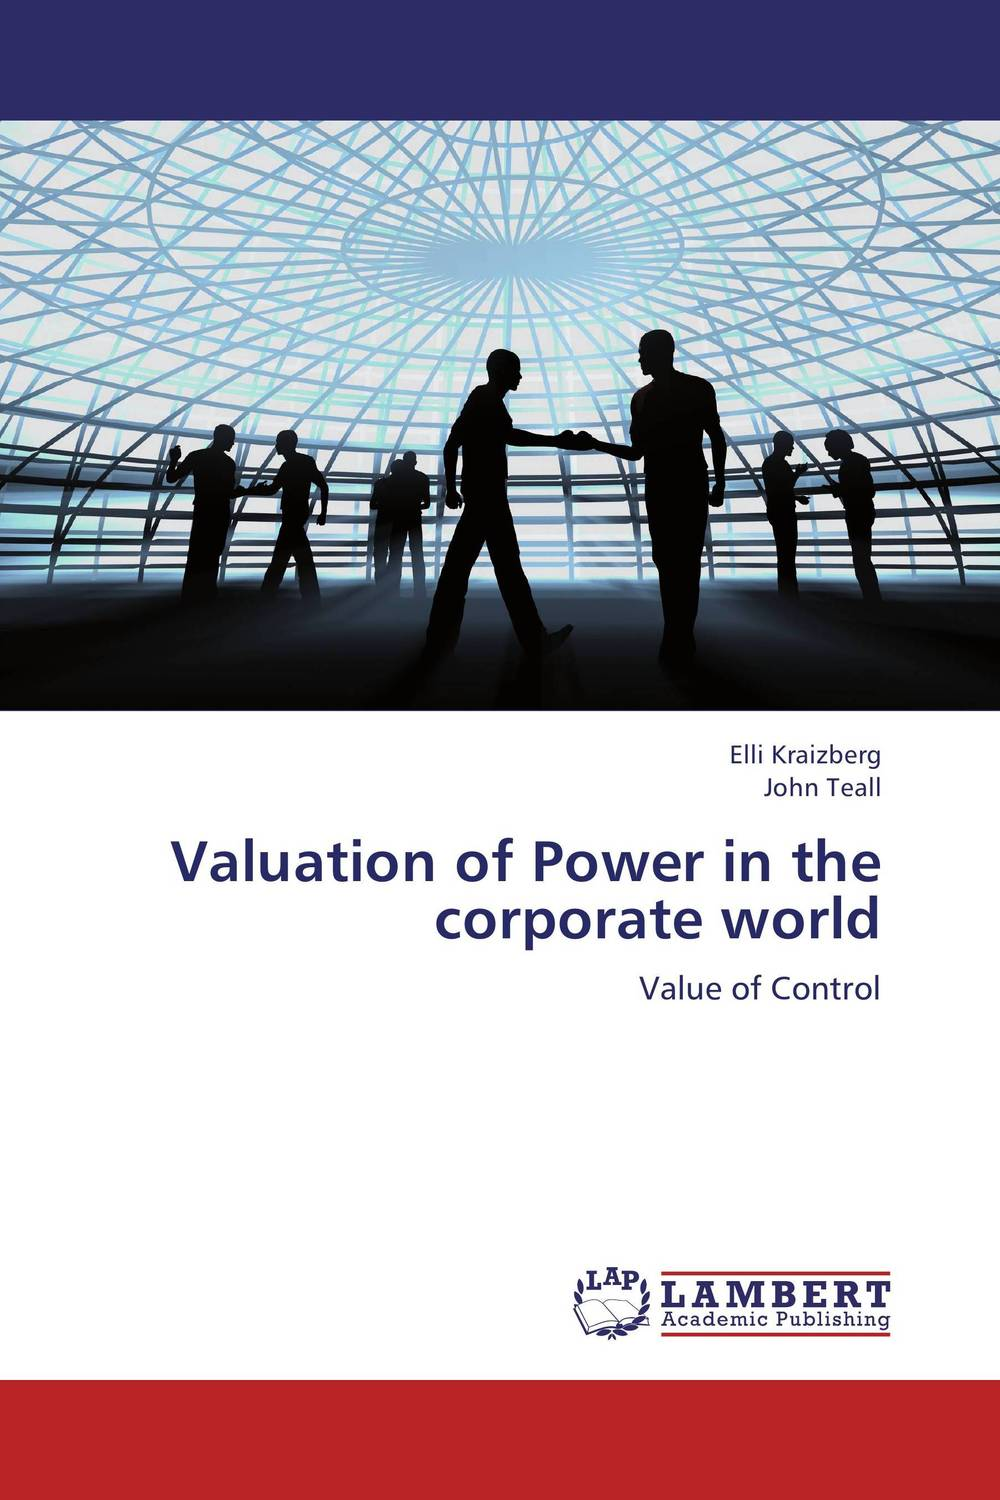 Valuation of Power in the corporate world corporate governance and firm value